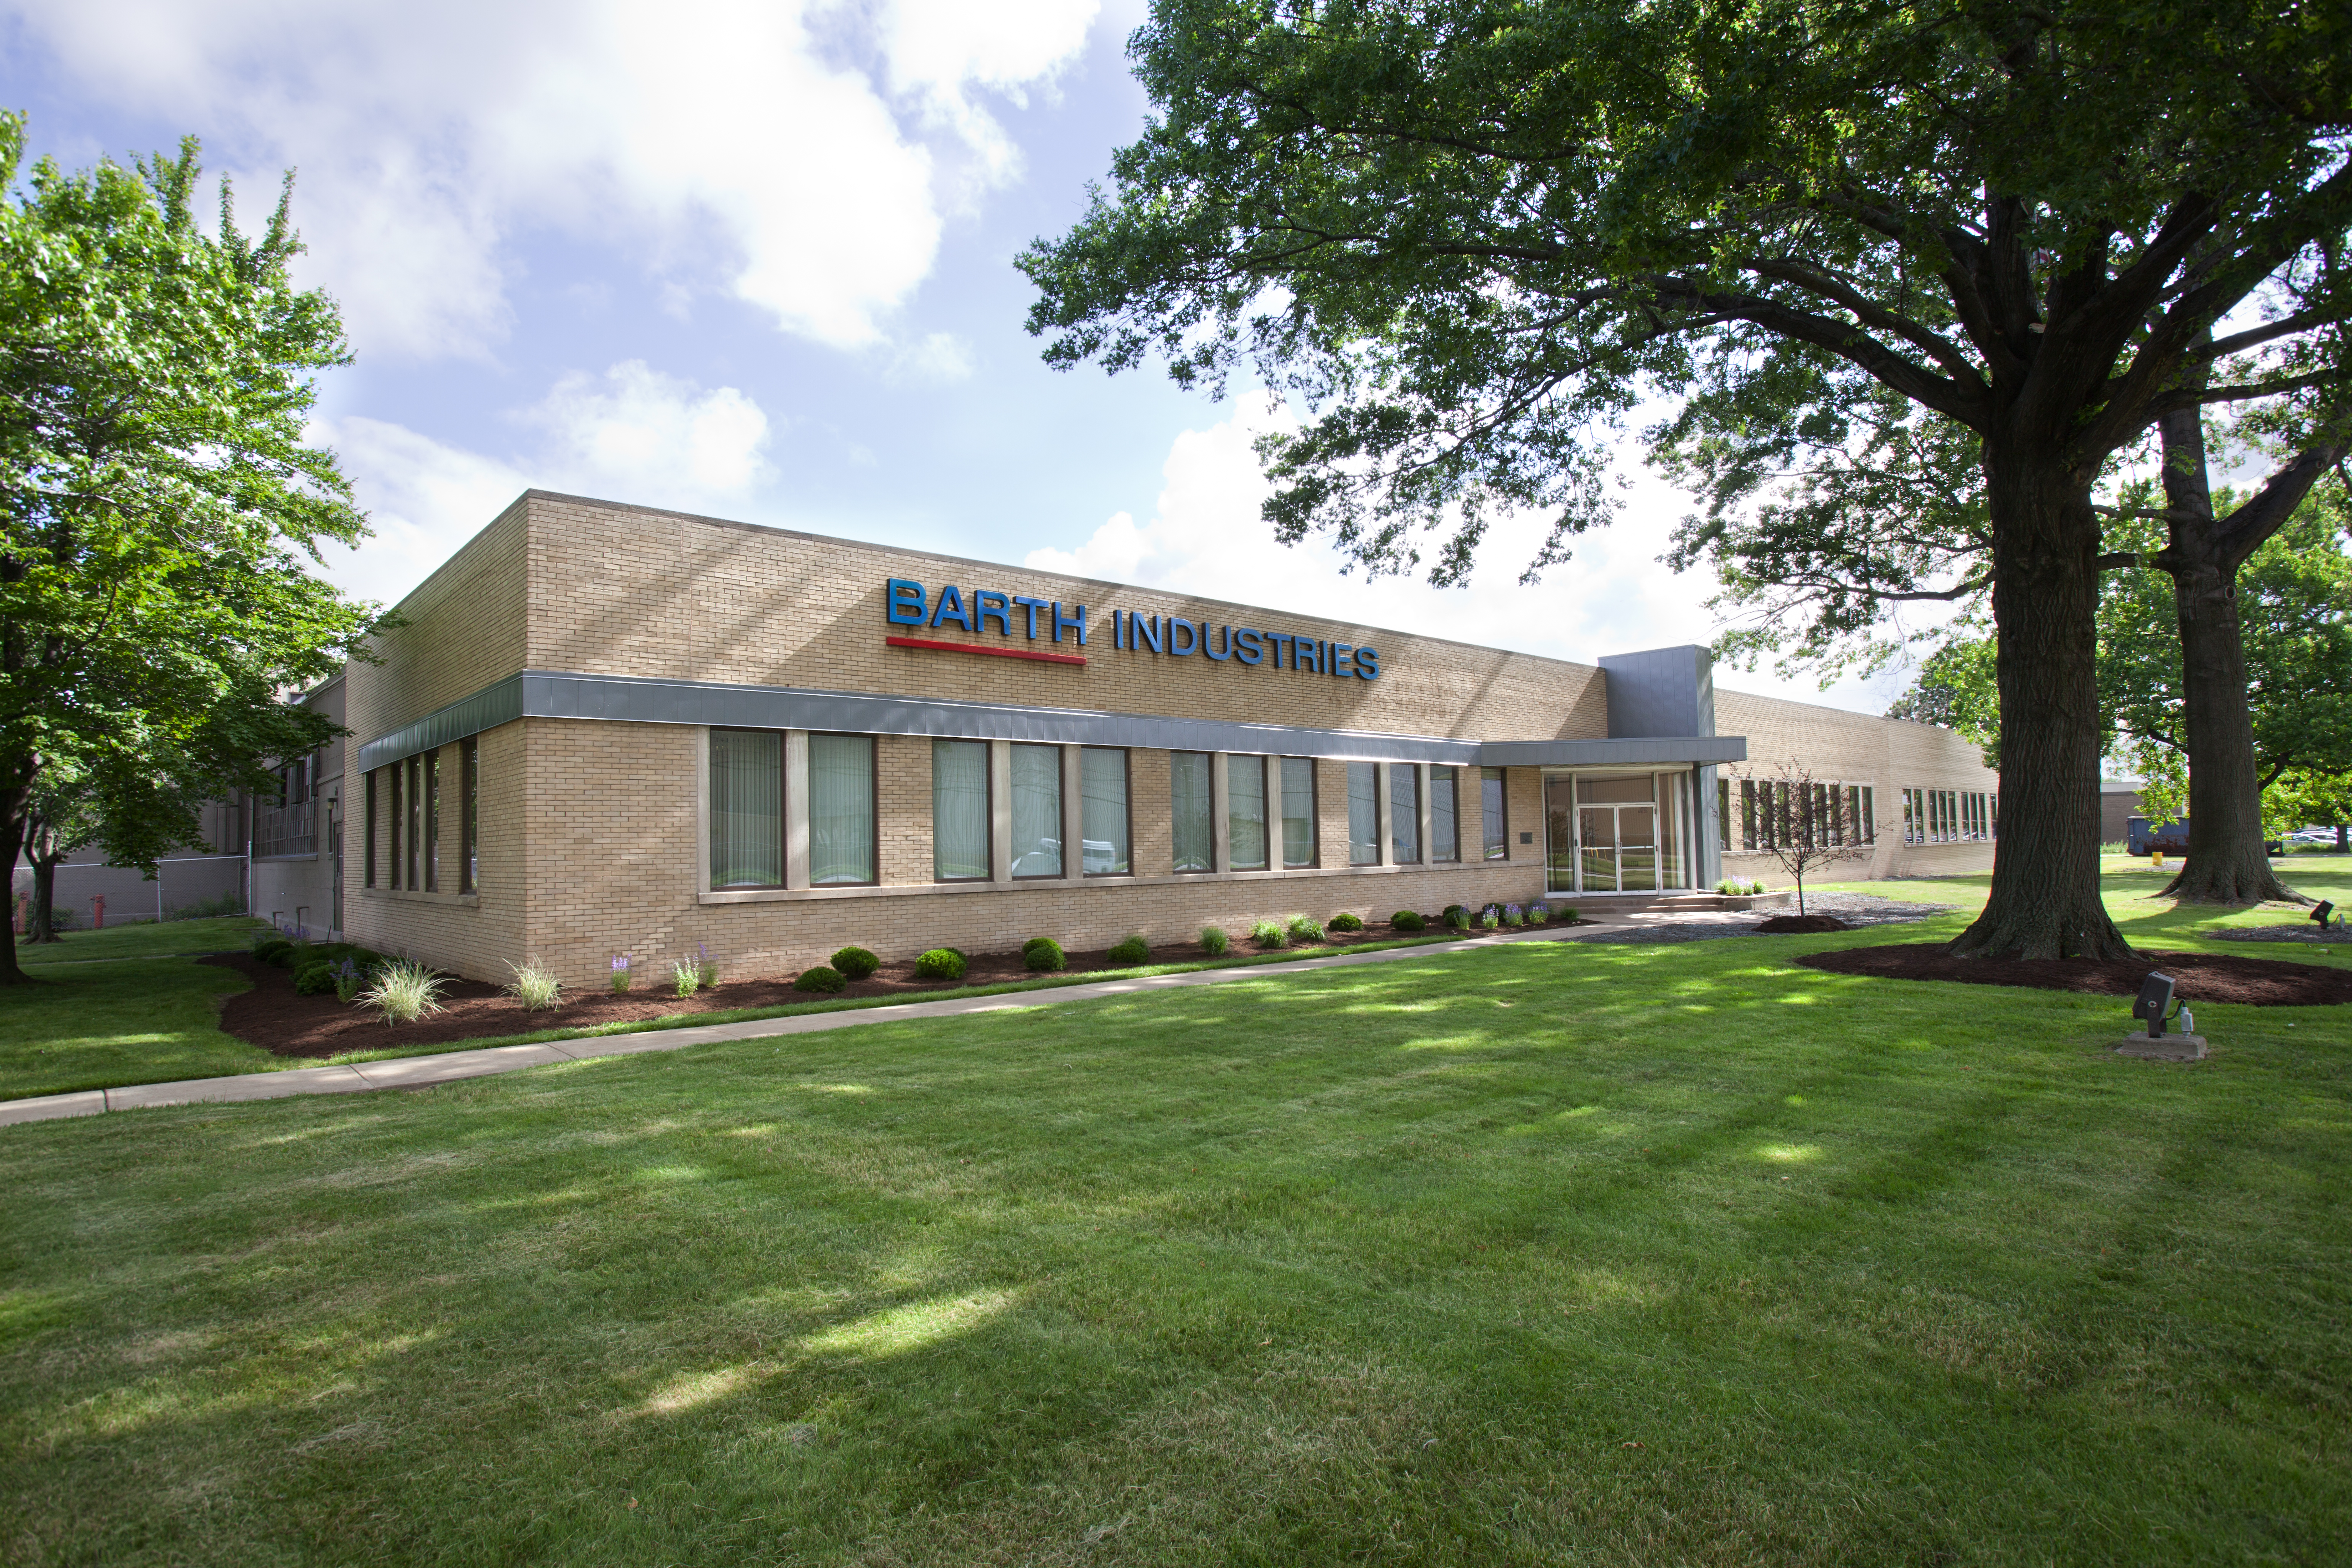 BARTH INDUSTRIES CELEBRATES 100 YEARS IN OPERATION